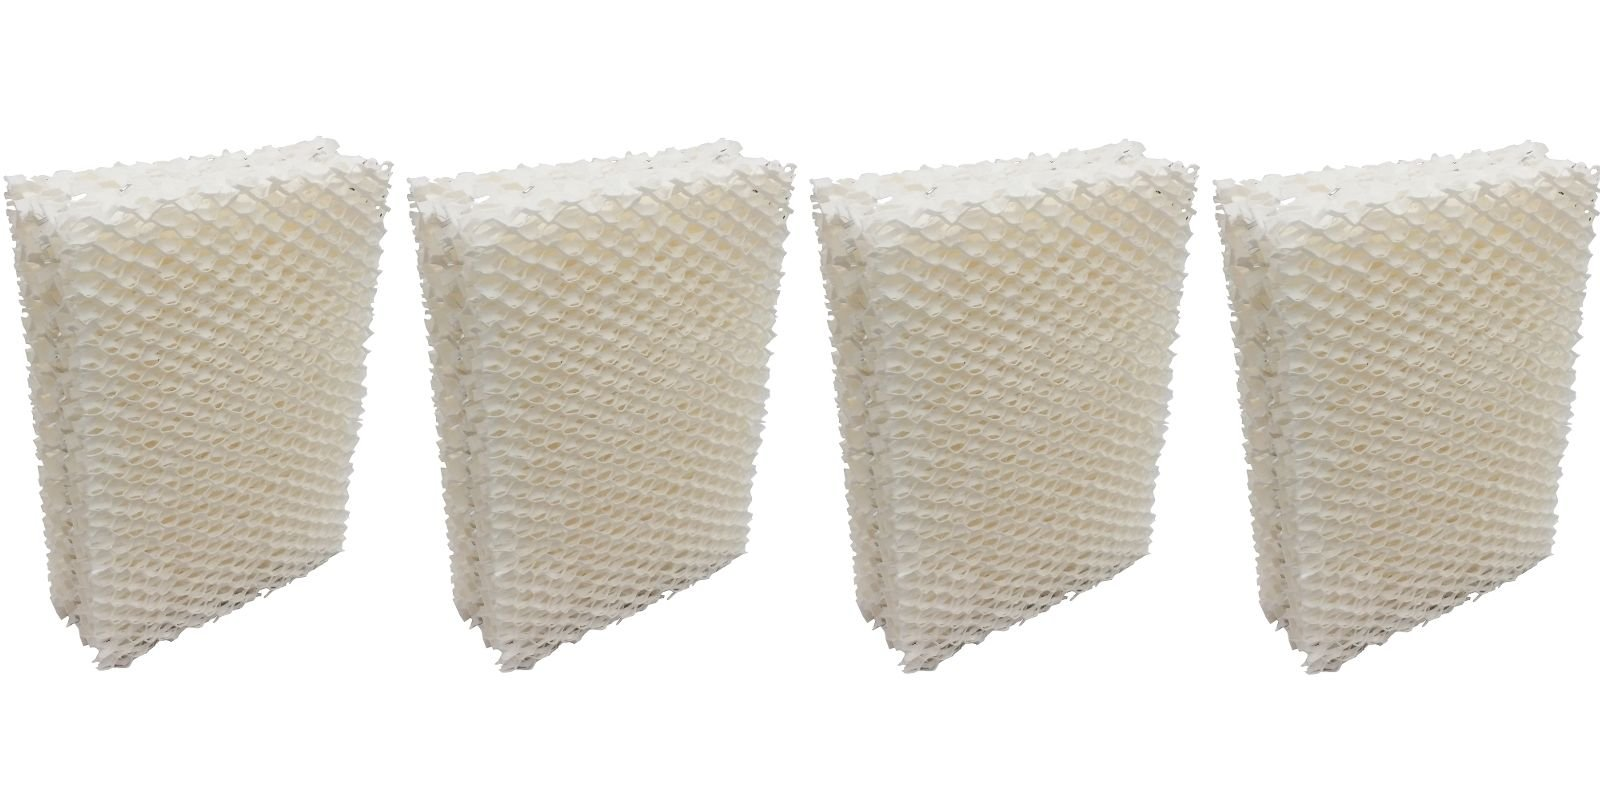 NEW Humidifier Filter for Bionaire WF2630, WF2530 - 4 Pack